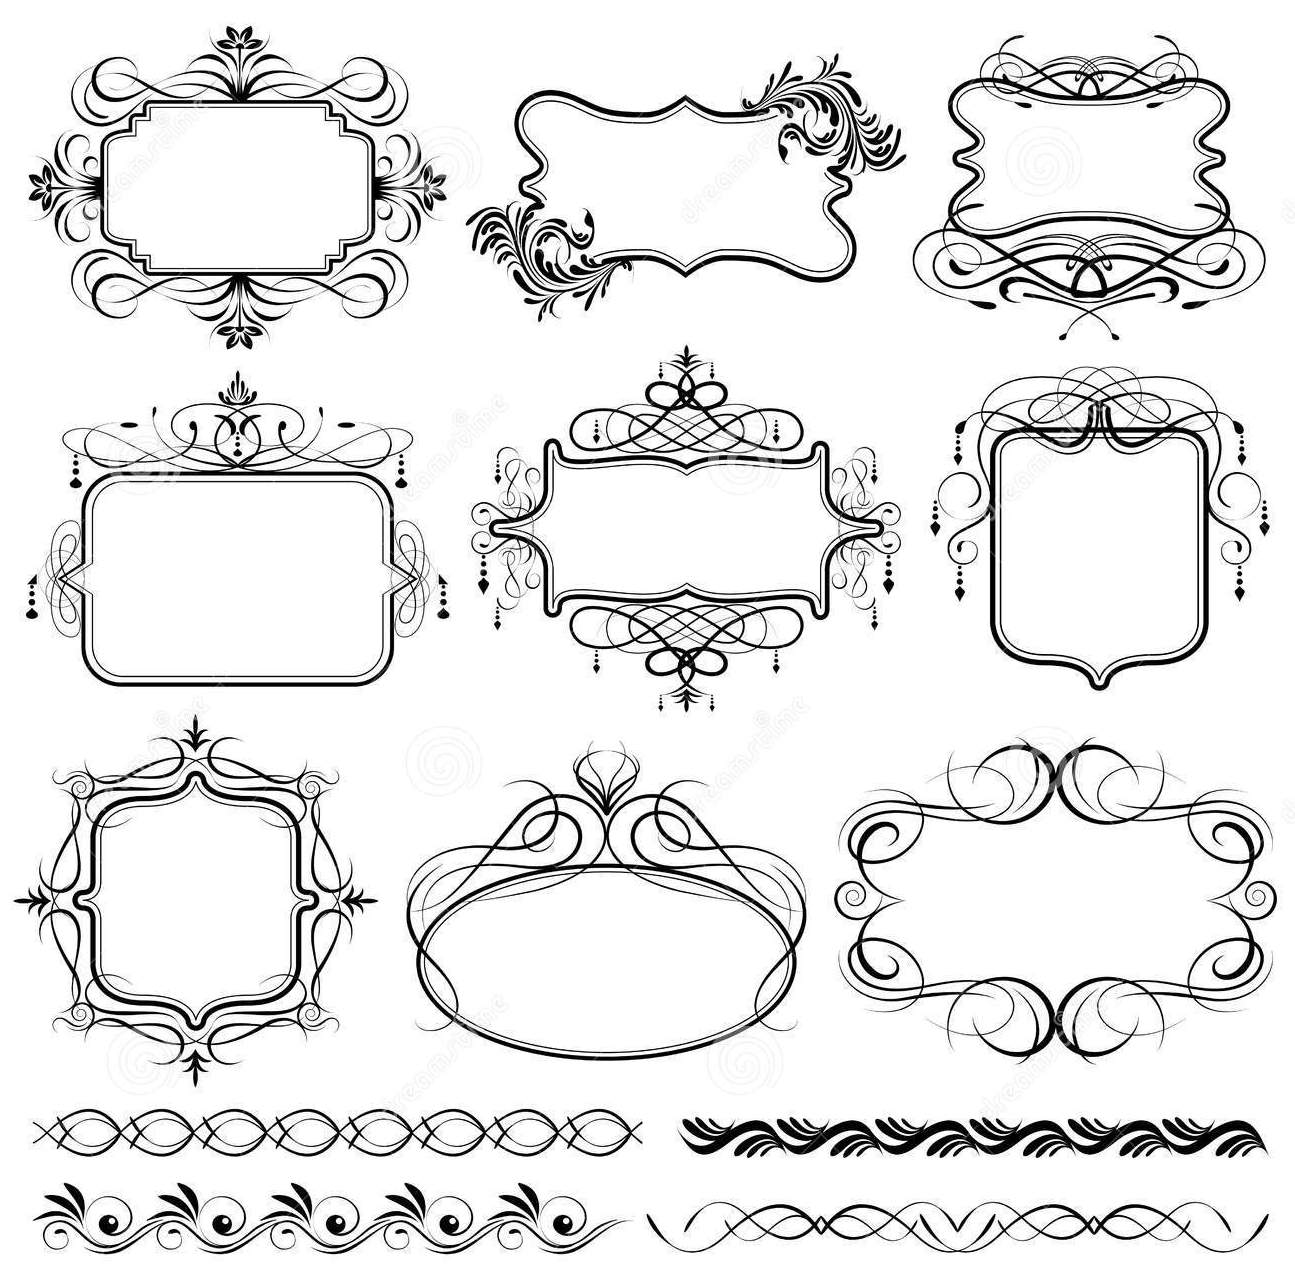 so cute free printable vintage frames. | oh my first communion!